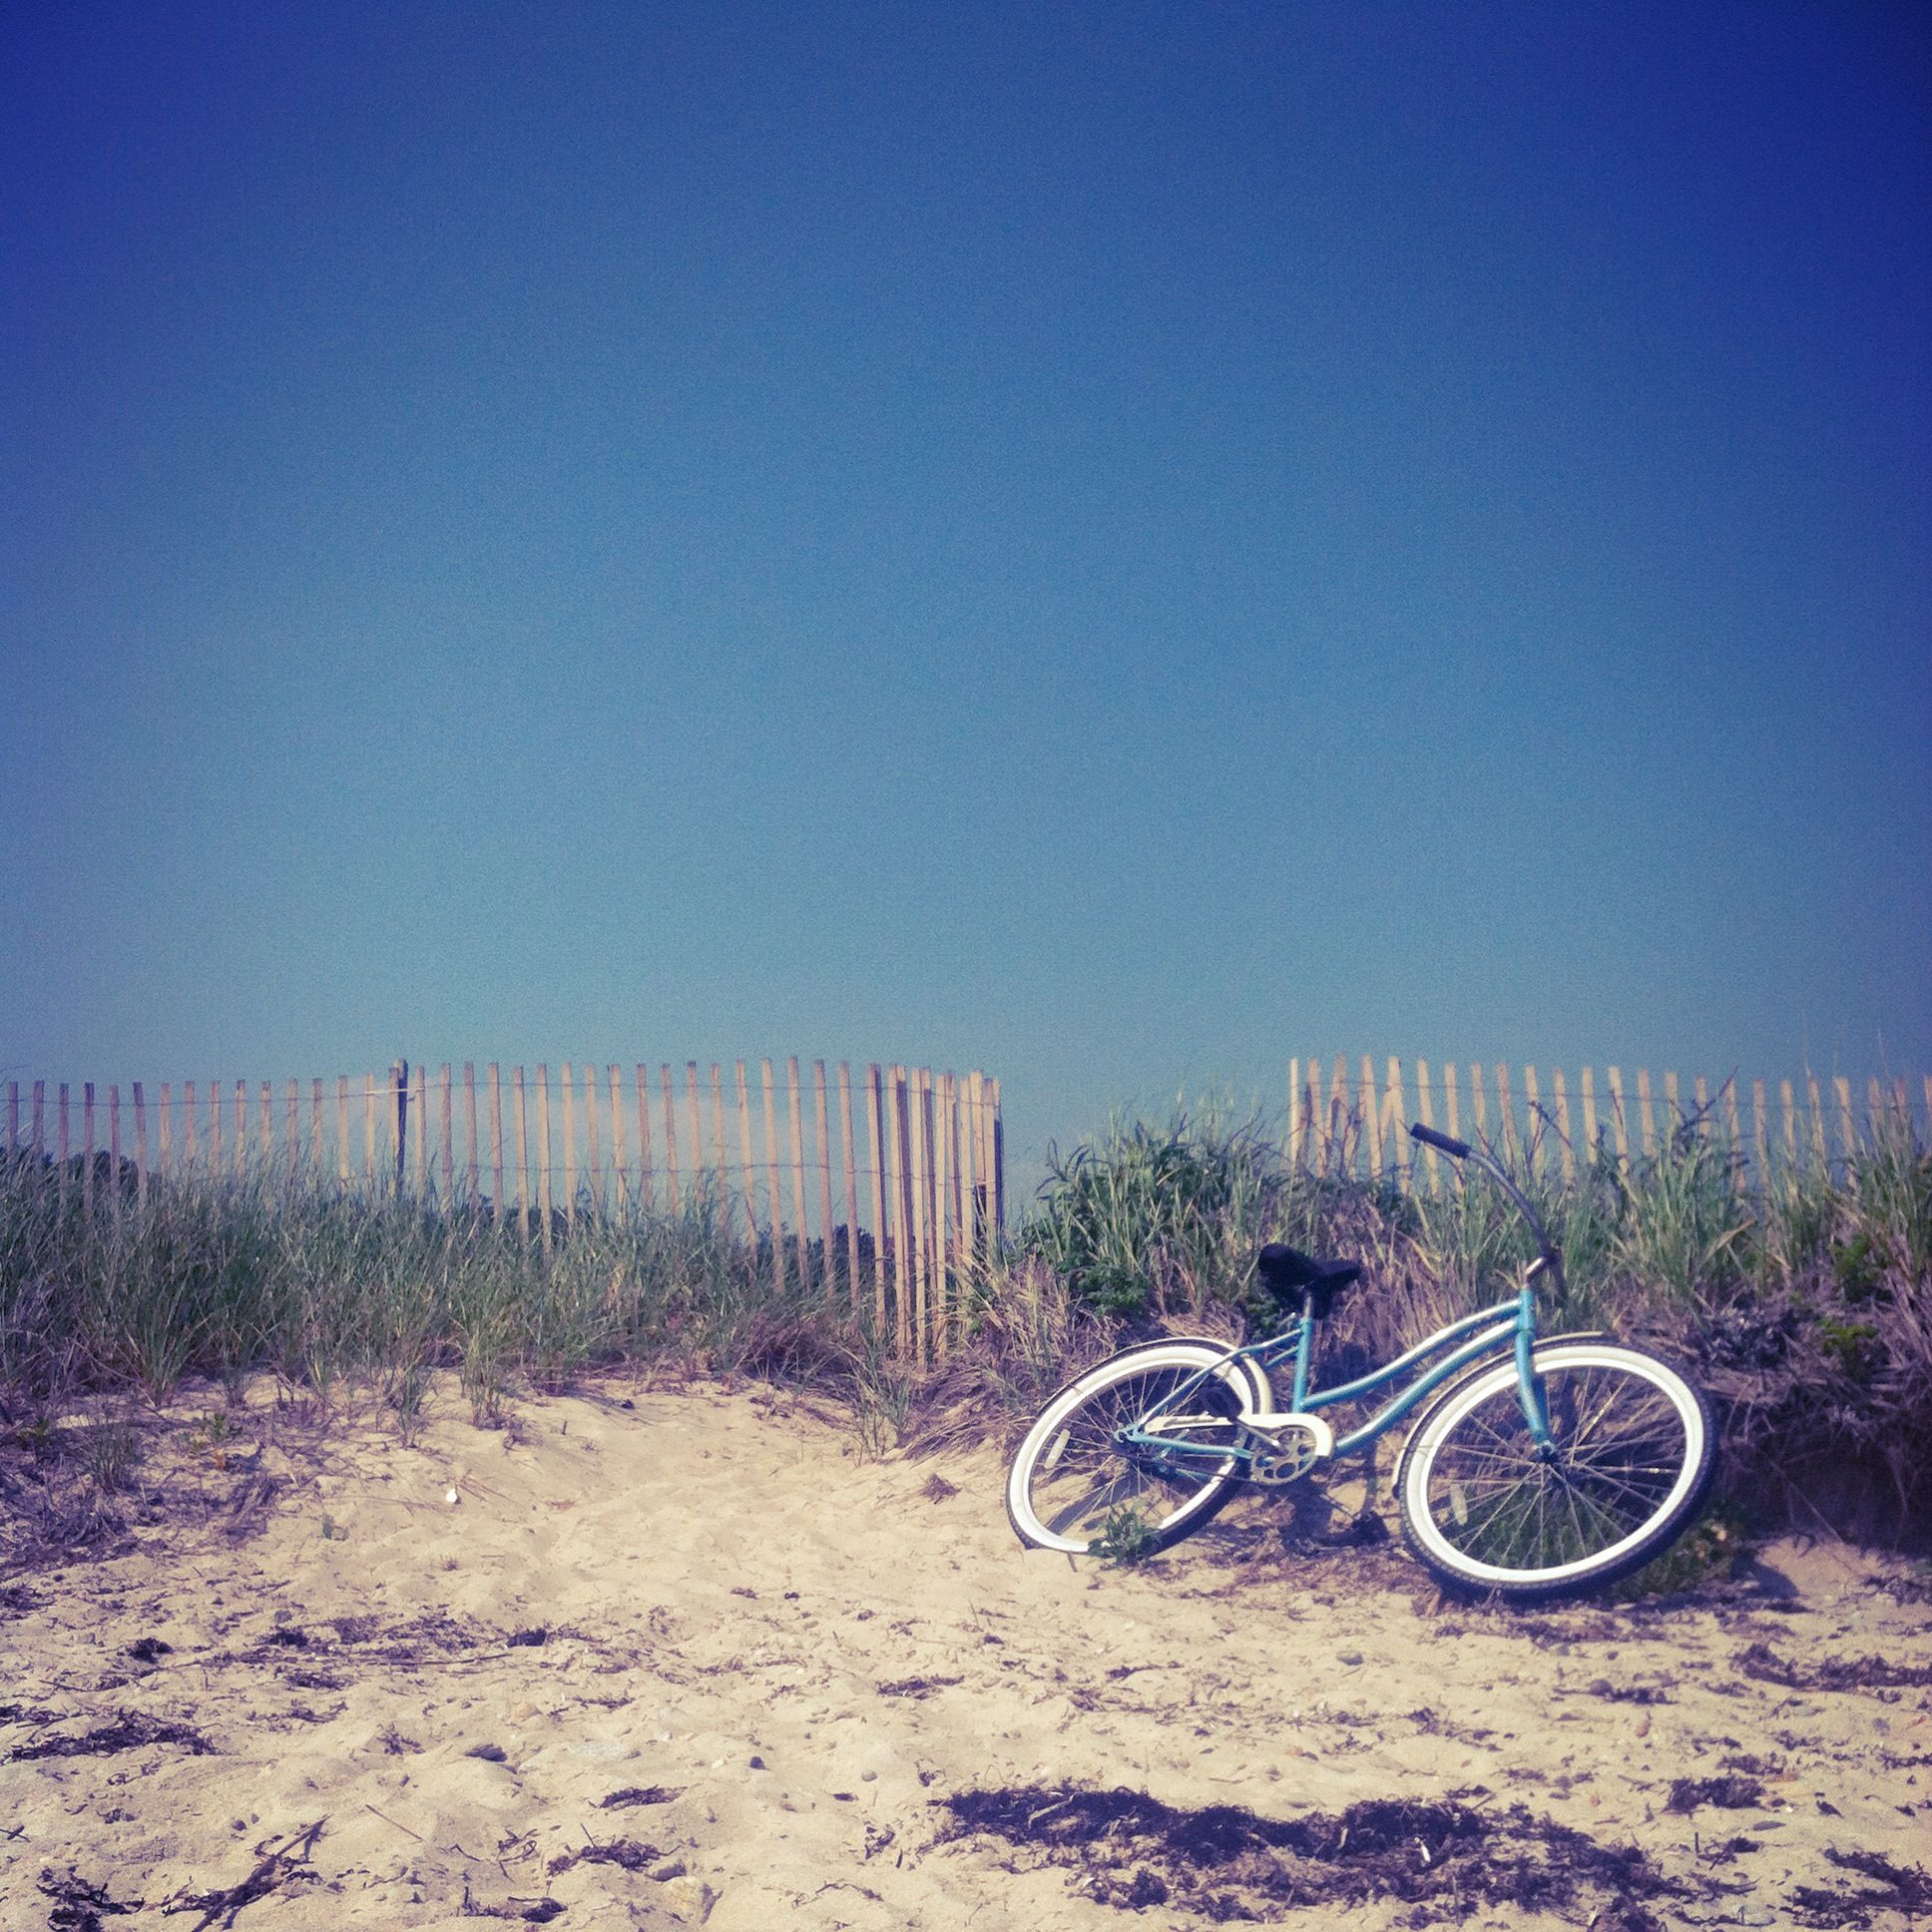 Cape Cod Spring: Reasons Why I Love Cape Cod